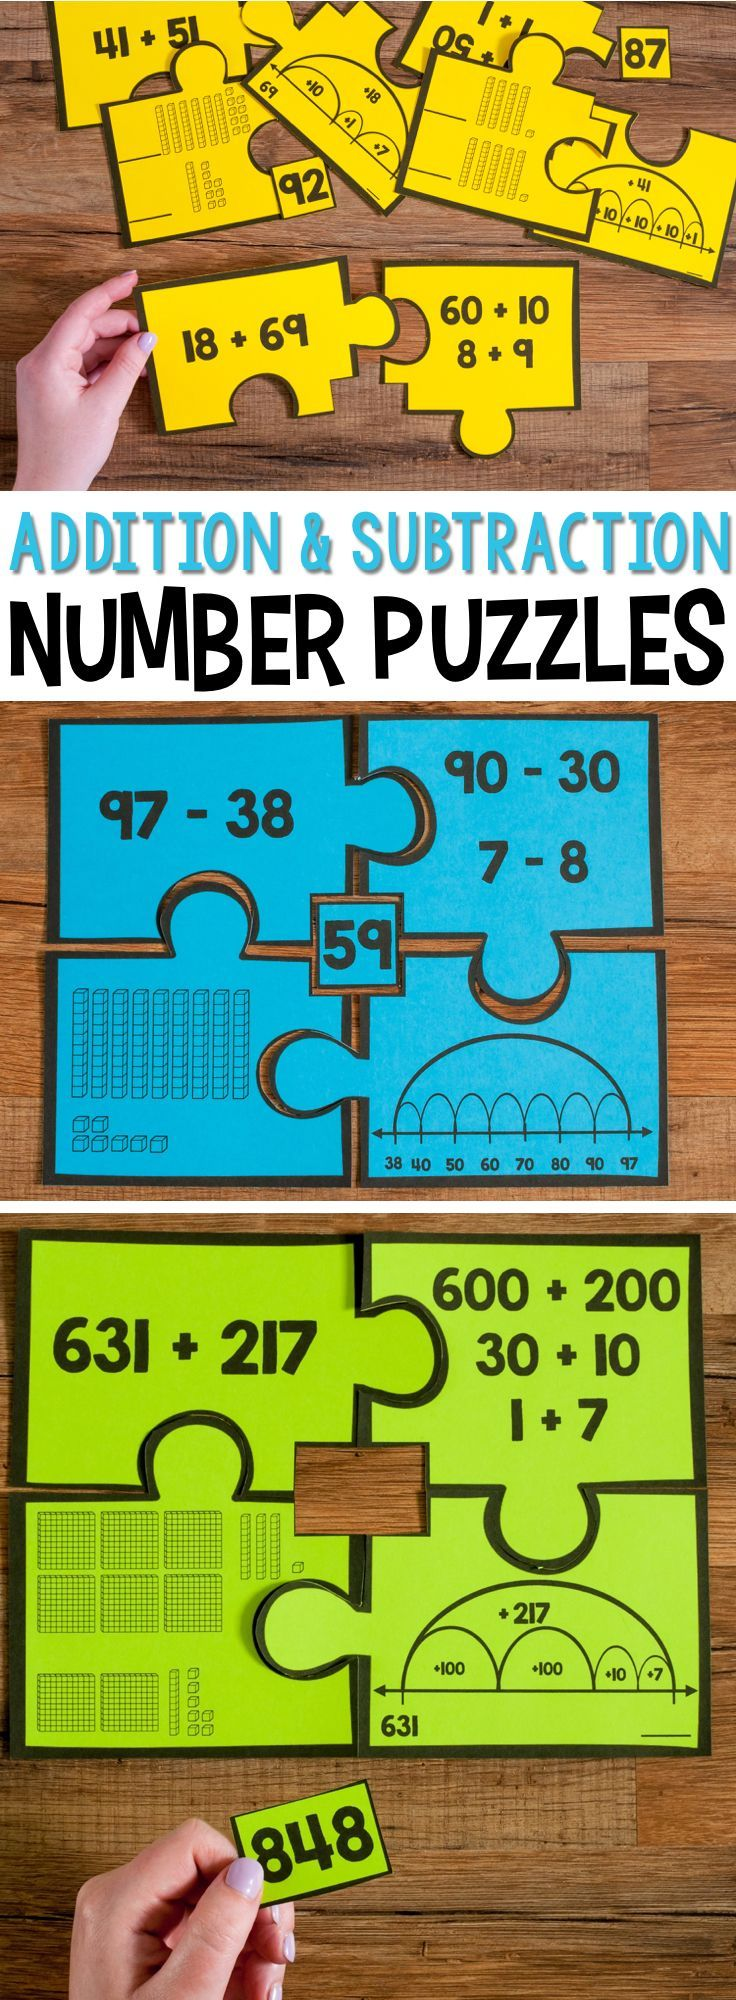 402 best Maths Activities images on Pinterest | Studying, Learning ...